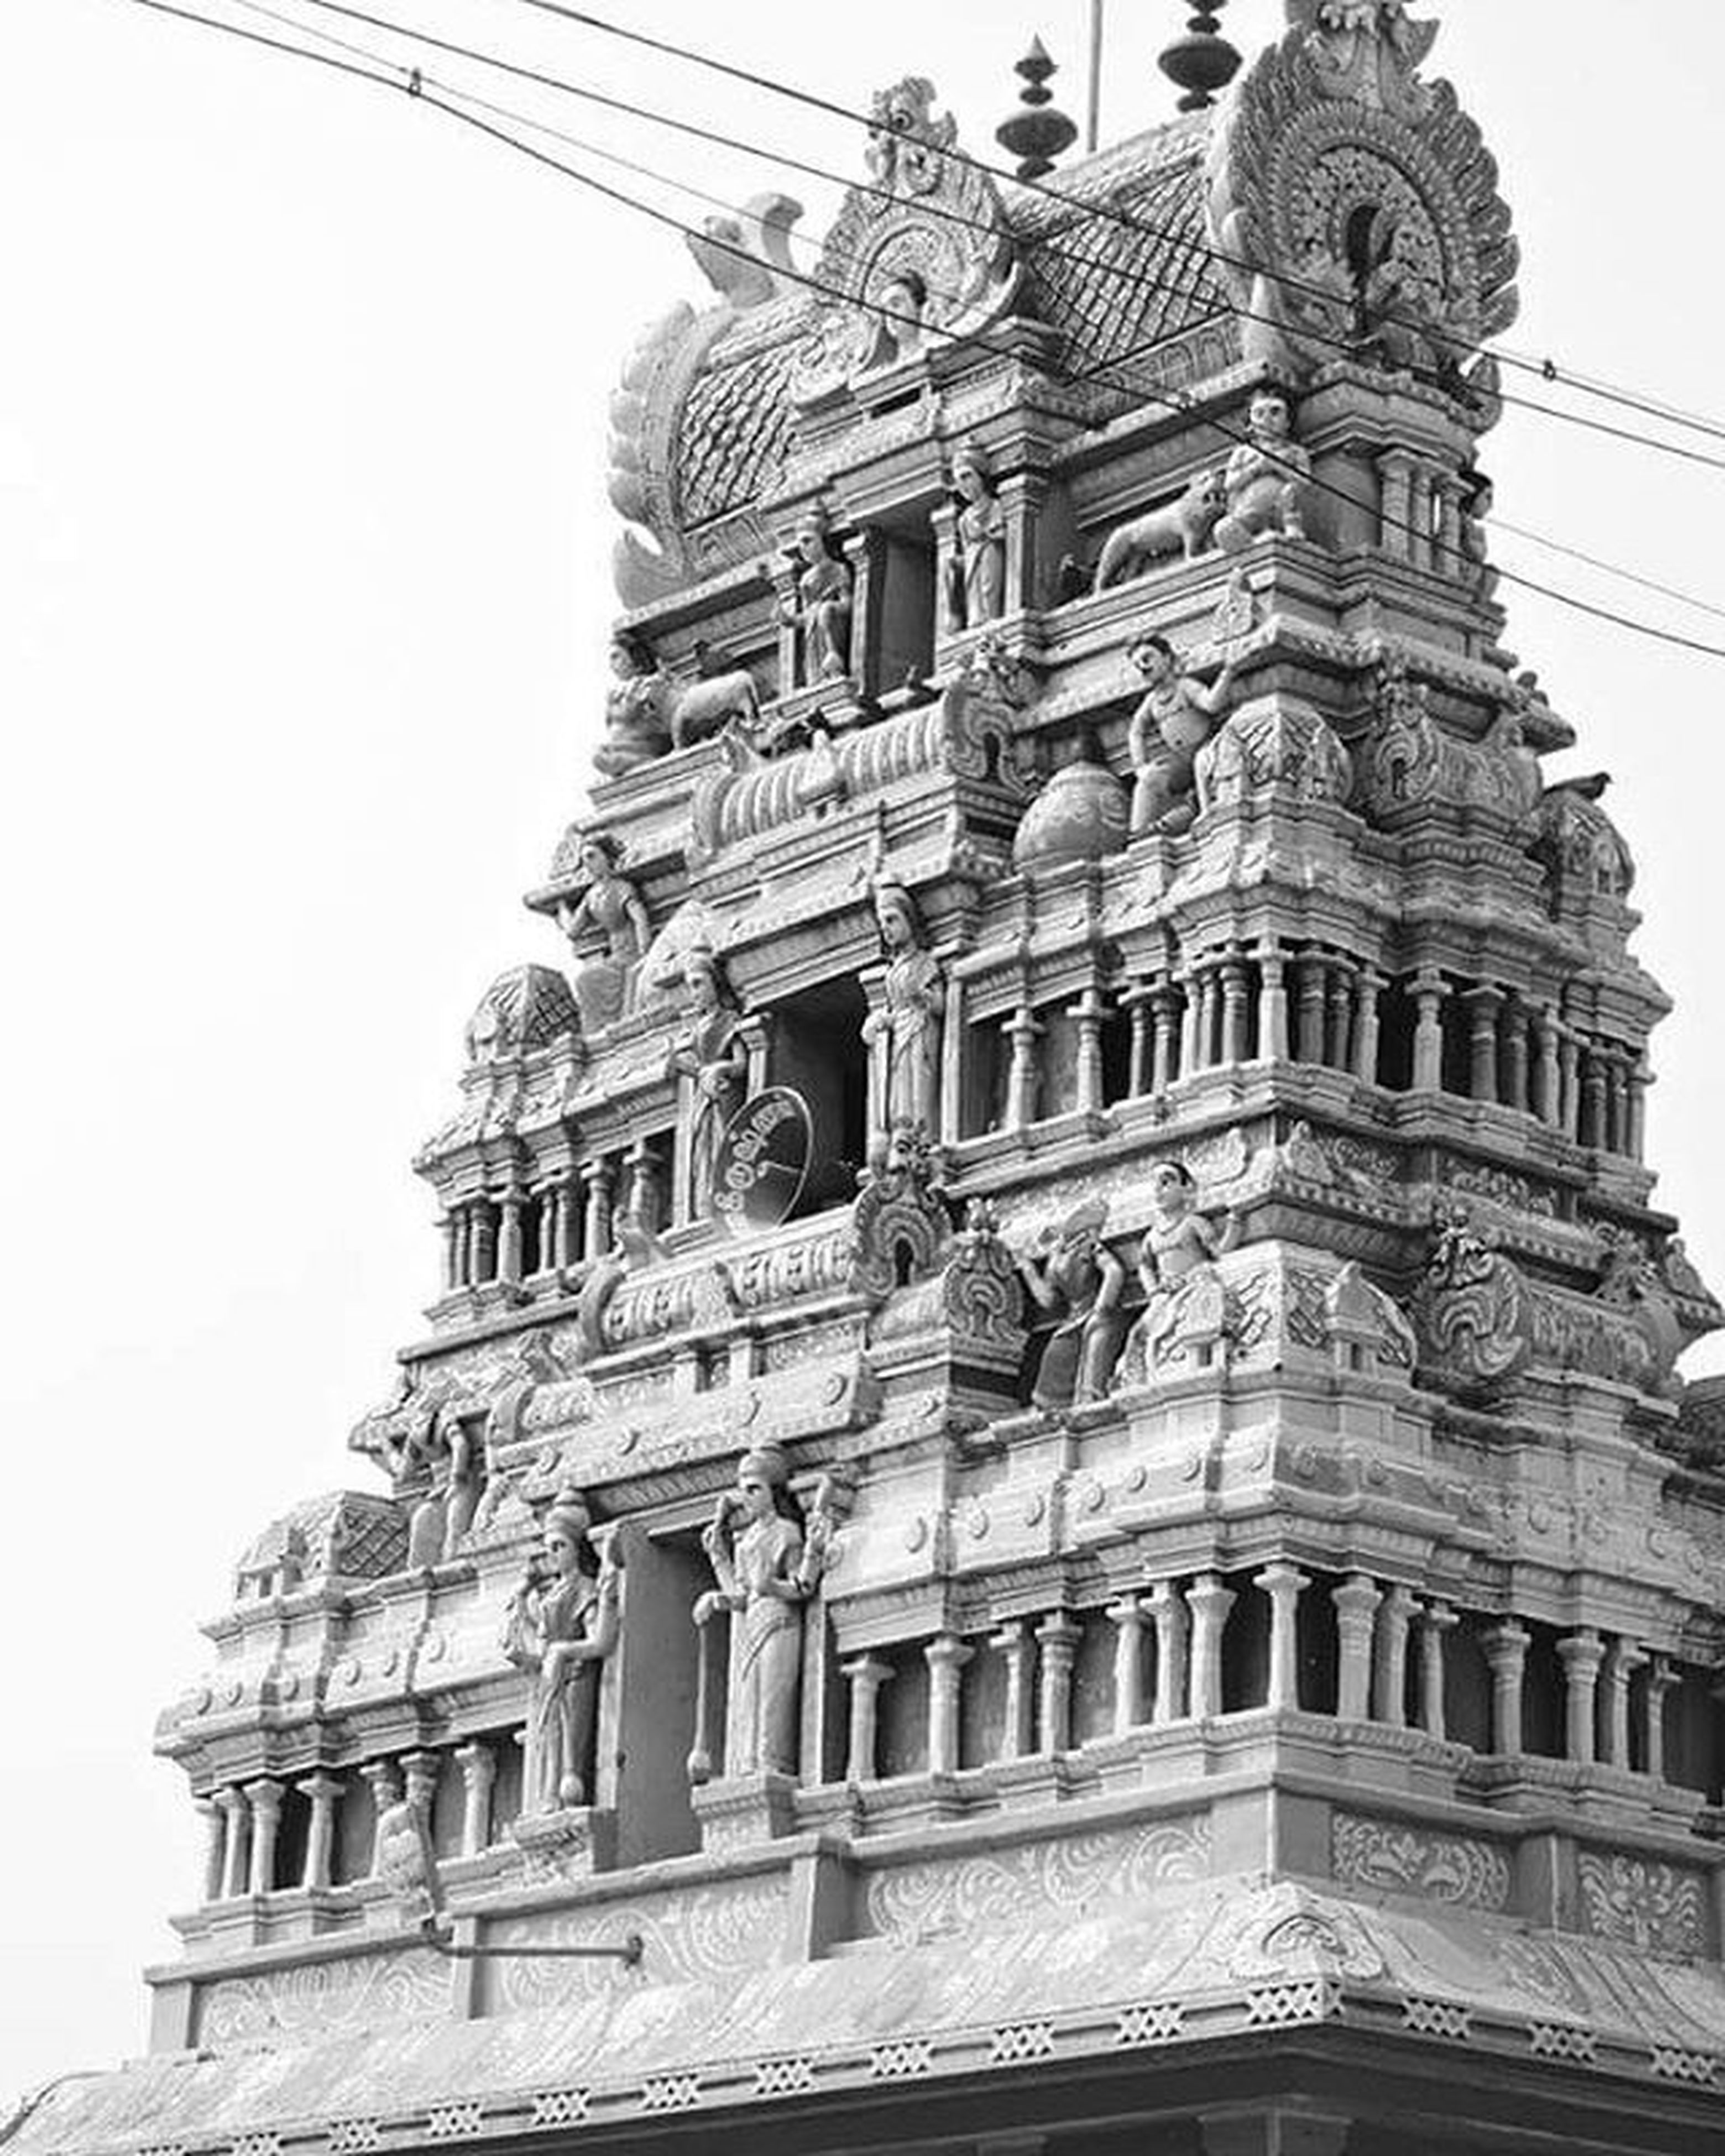 architecture, built structure, building exterior, low angle view, history, clear sky, famous place, travel destinations, tourism, travel, old, international landmark, religion, capital cities, day, place of worship, ancient, architectural column, the past, outdoors